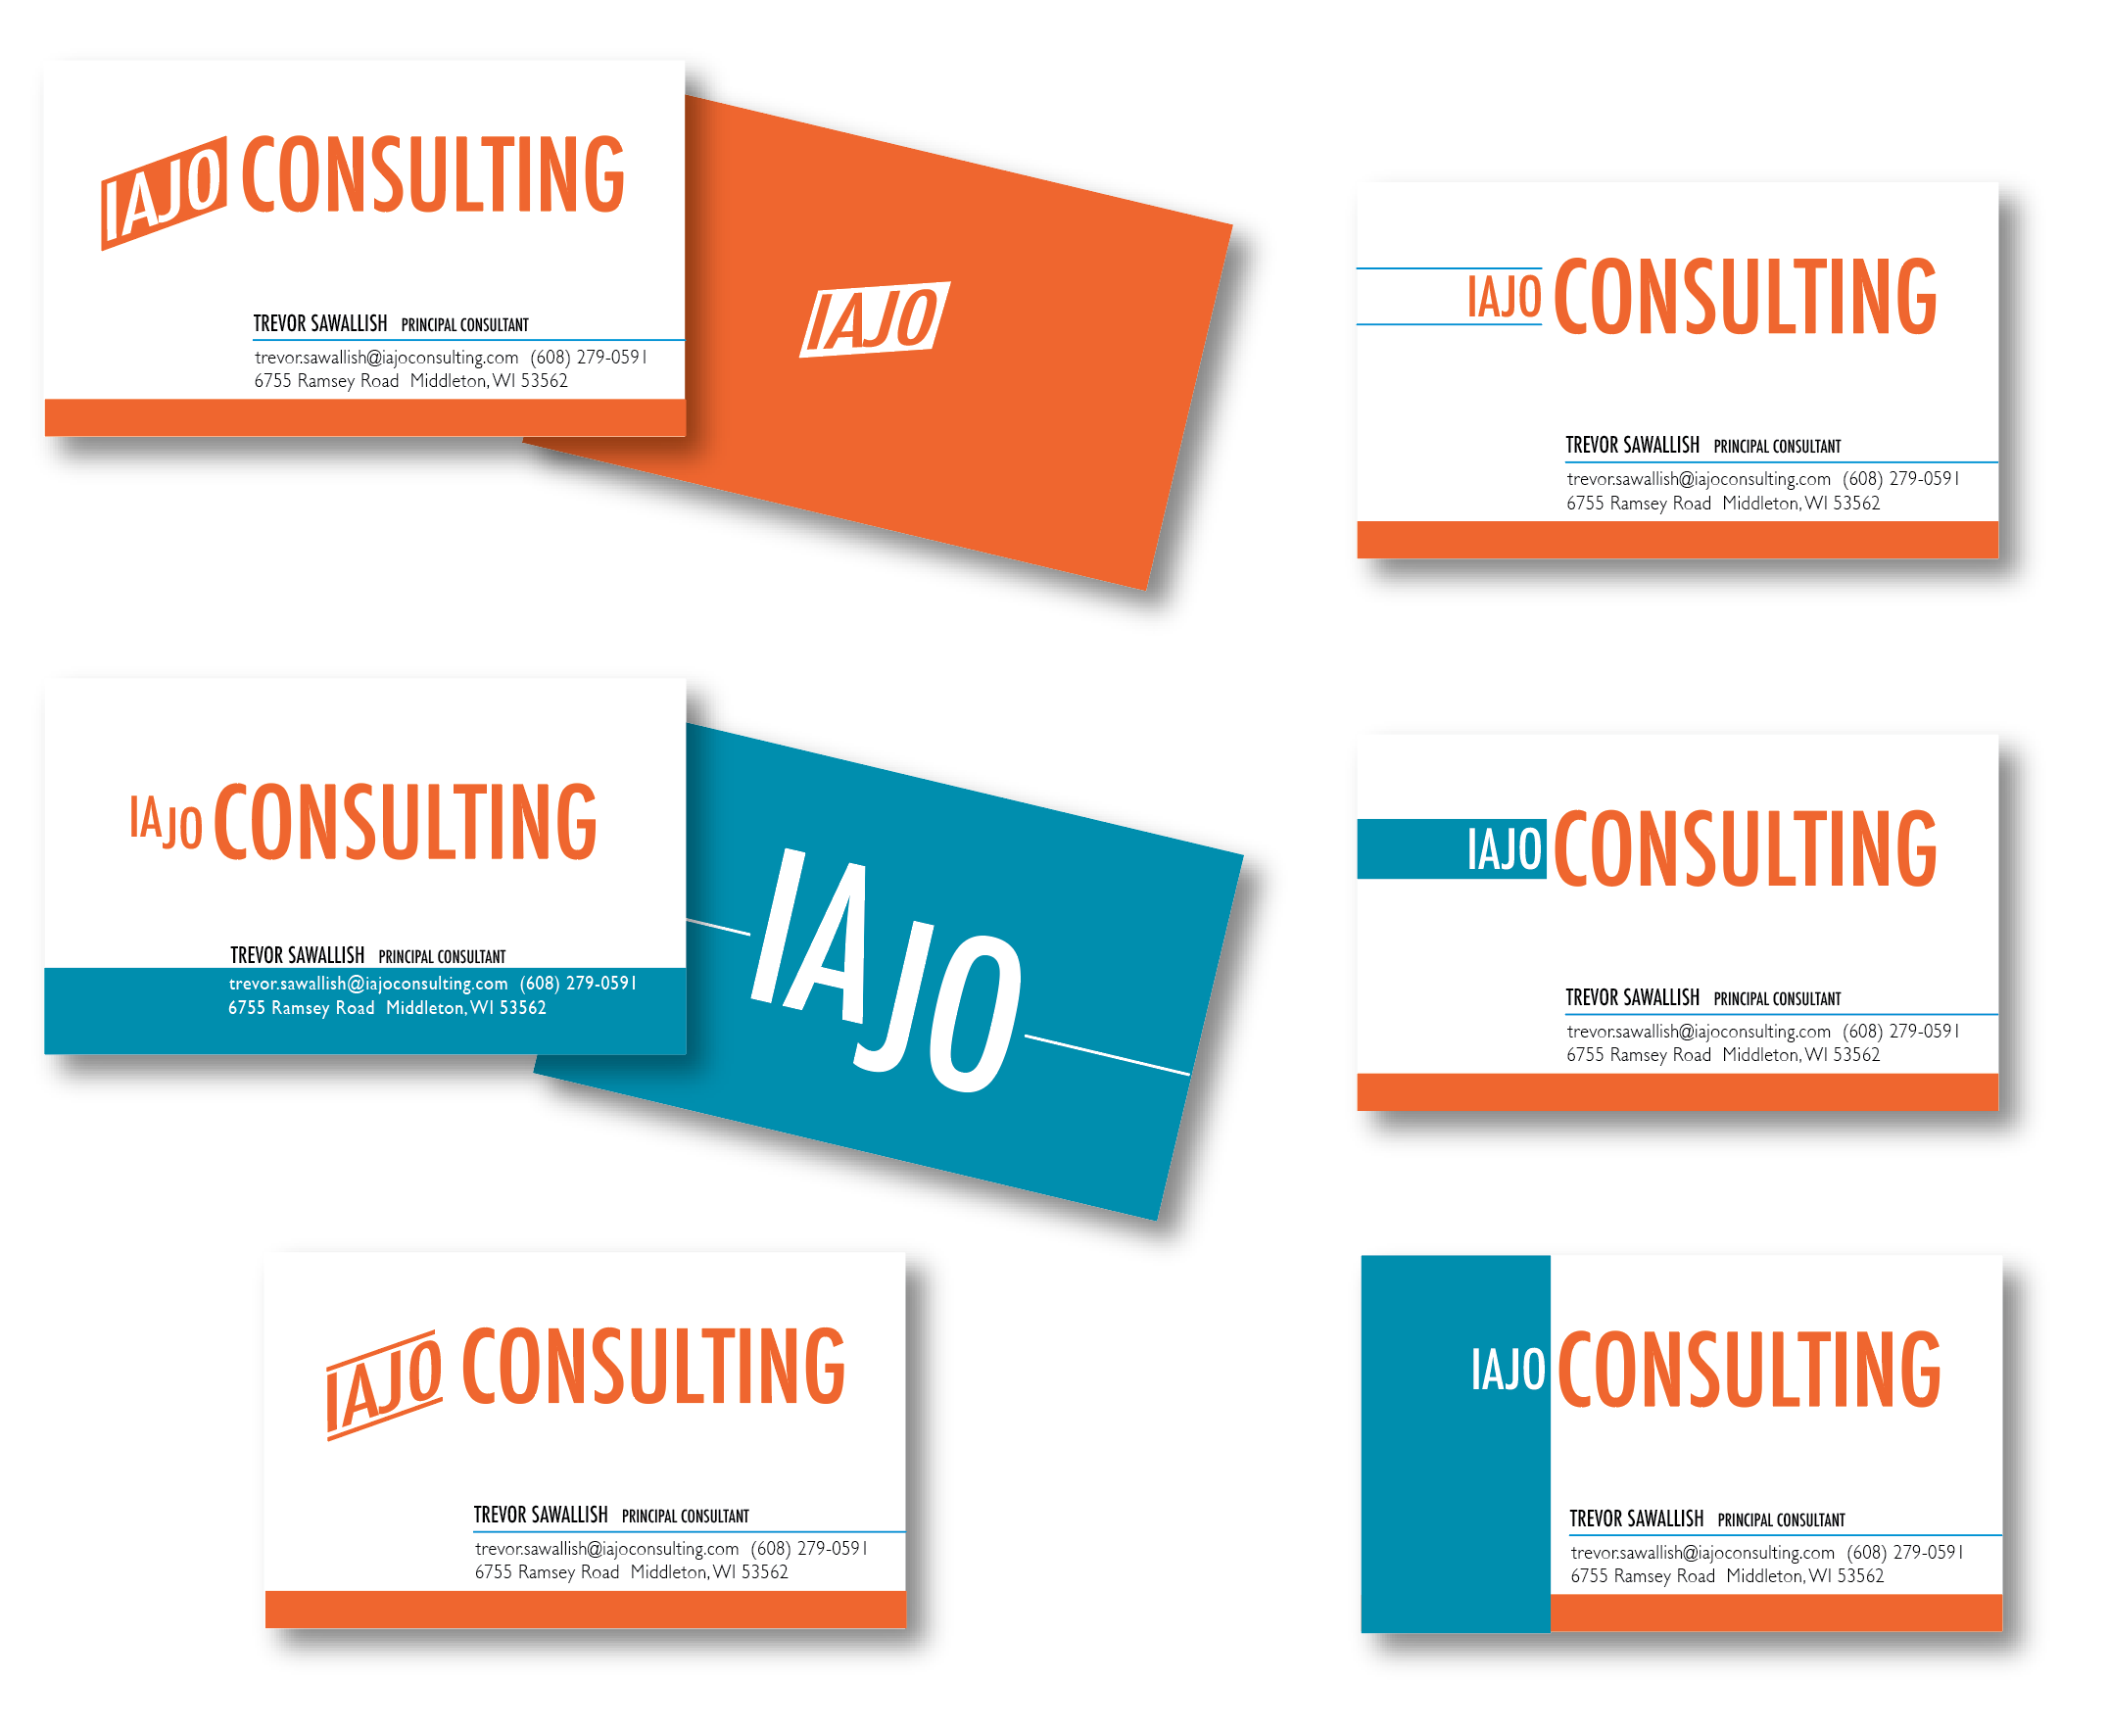 Iajo Consulting logo and business cards